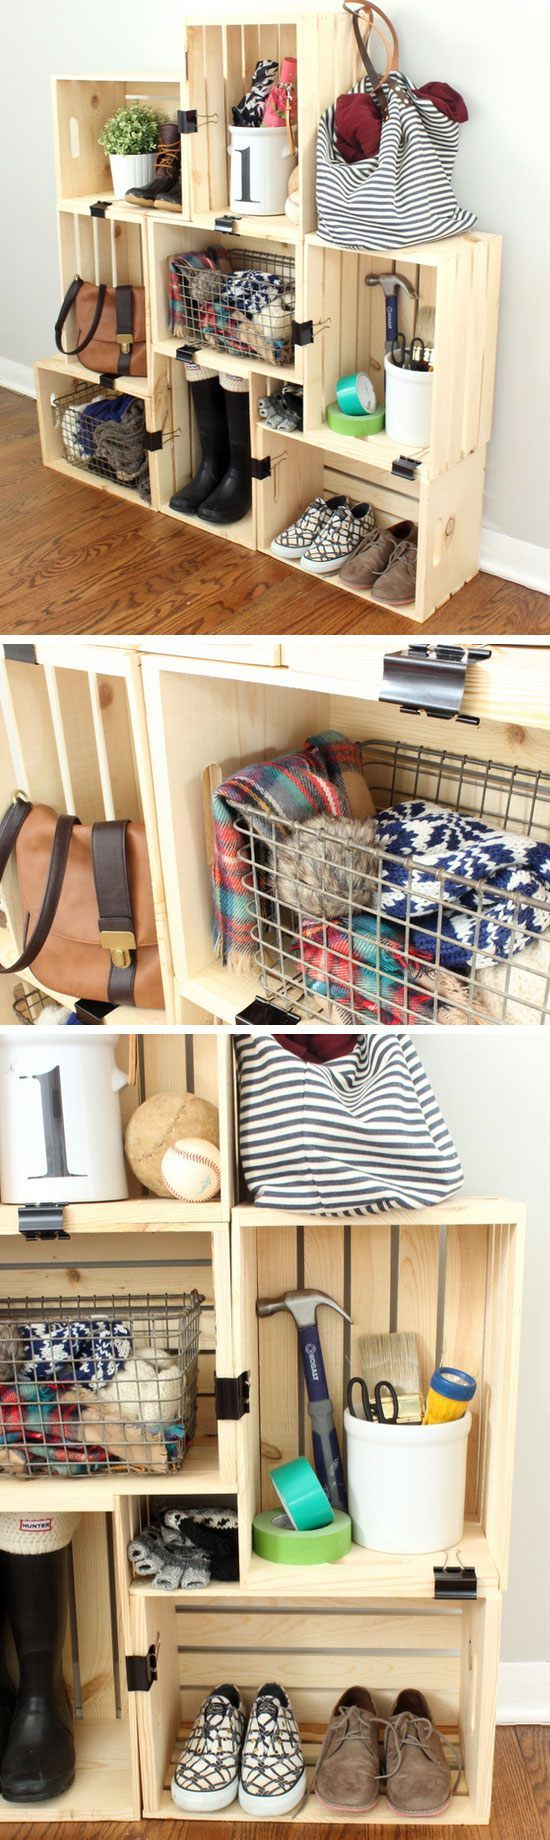 Easy Crate Storage With Binder Clips Small Apartment Decorating Ideas On A Budget